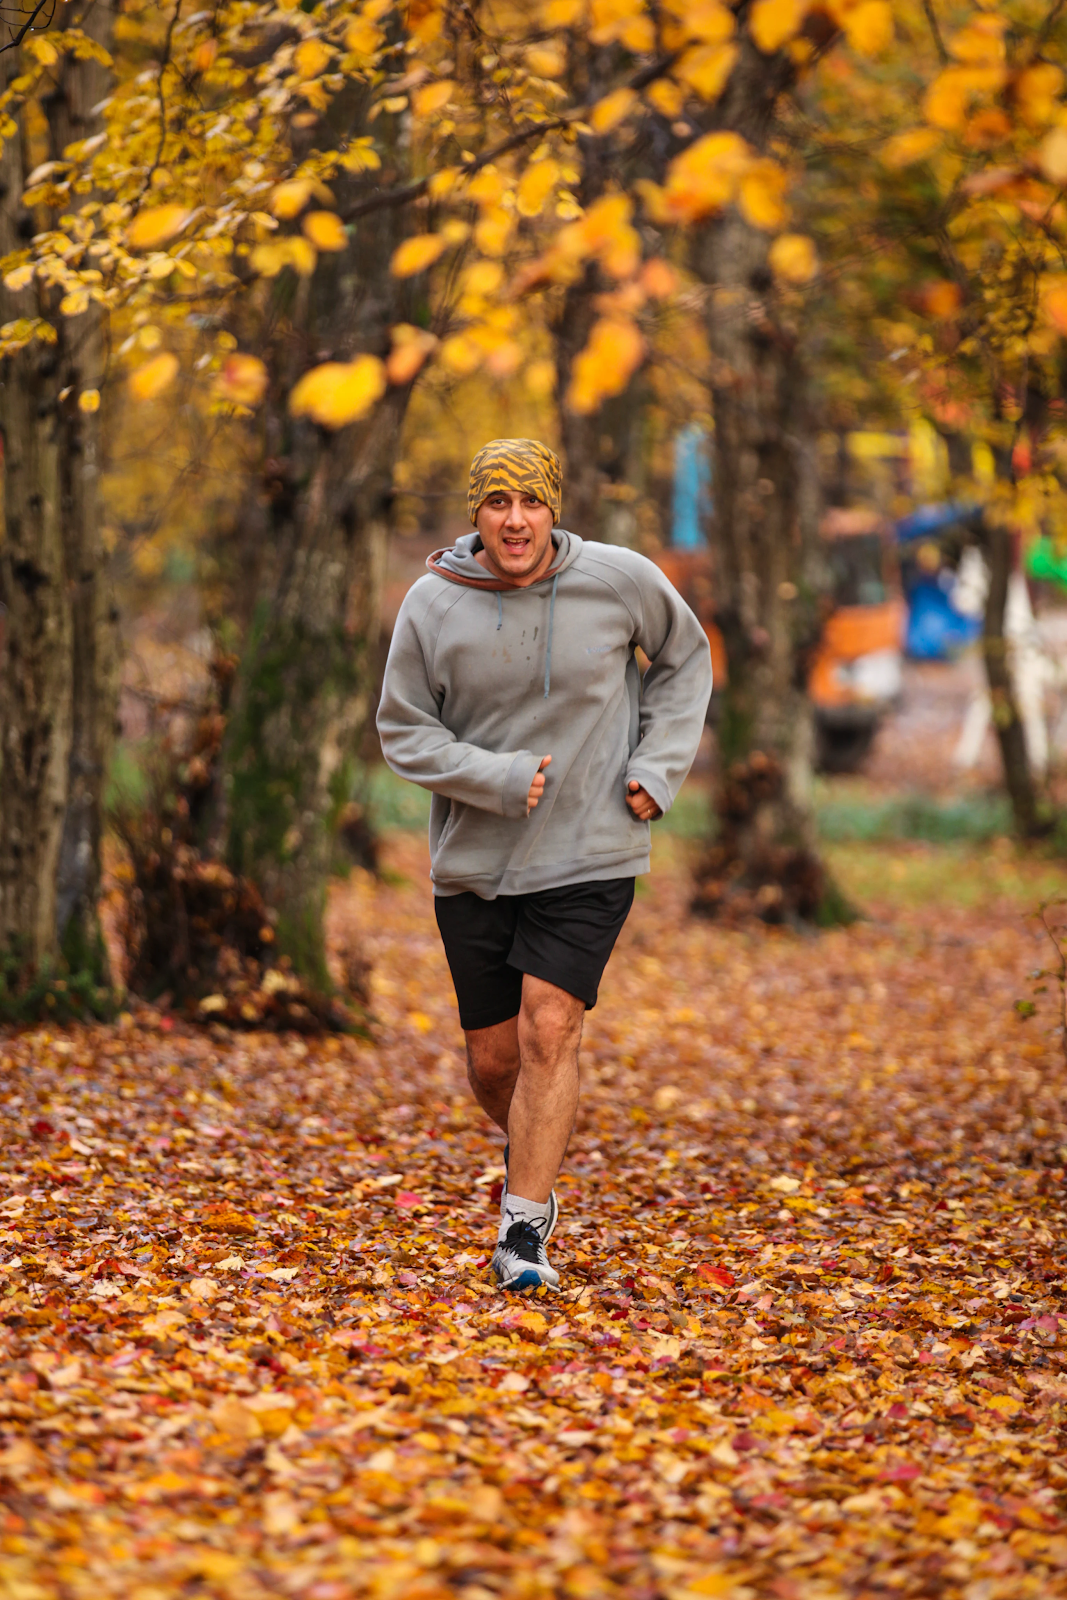 Man running on a path surrounded by trees and fall leaves